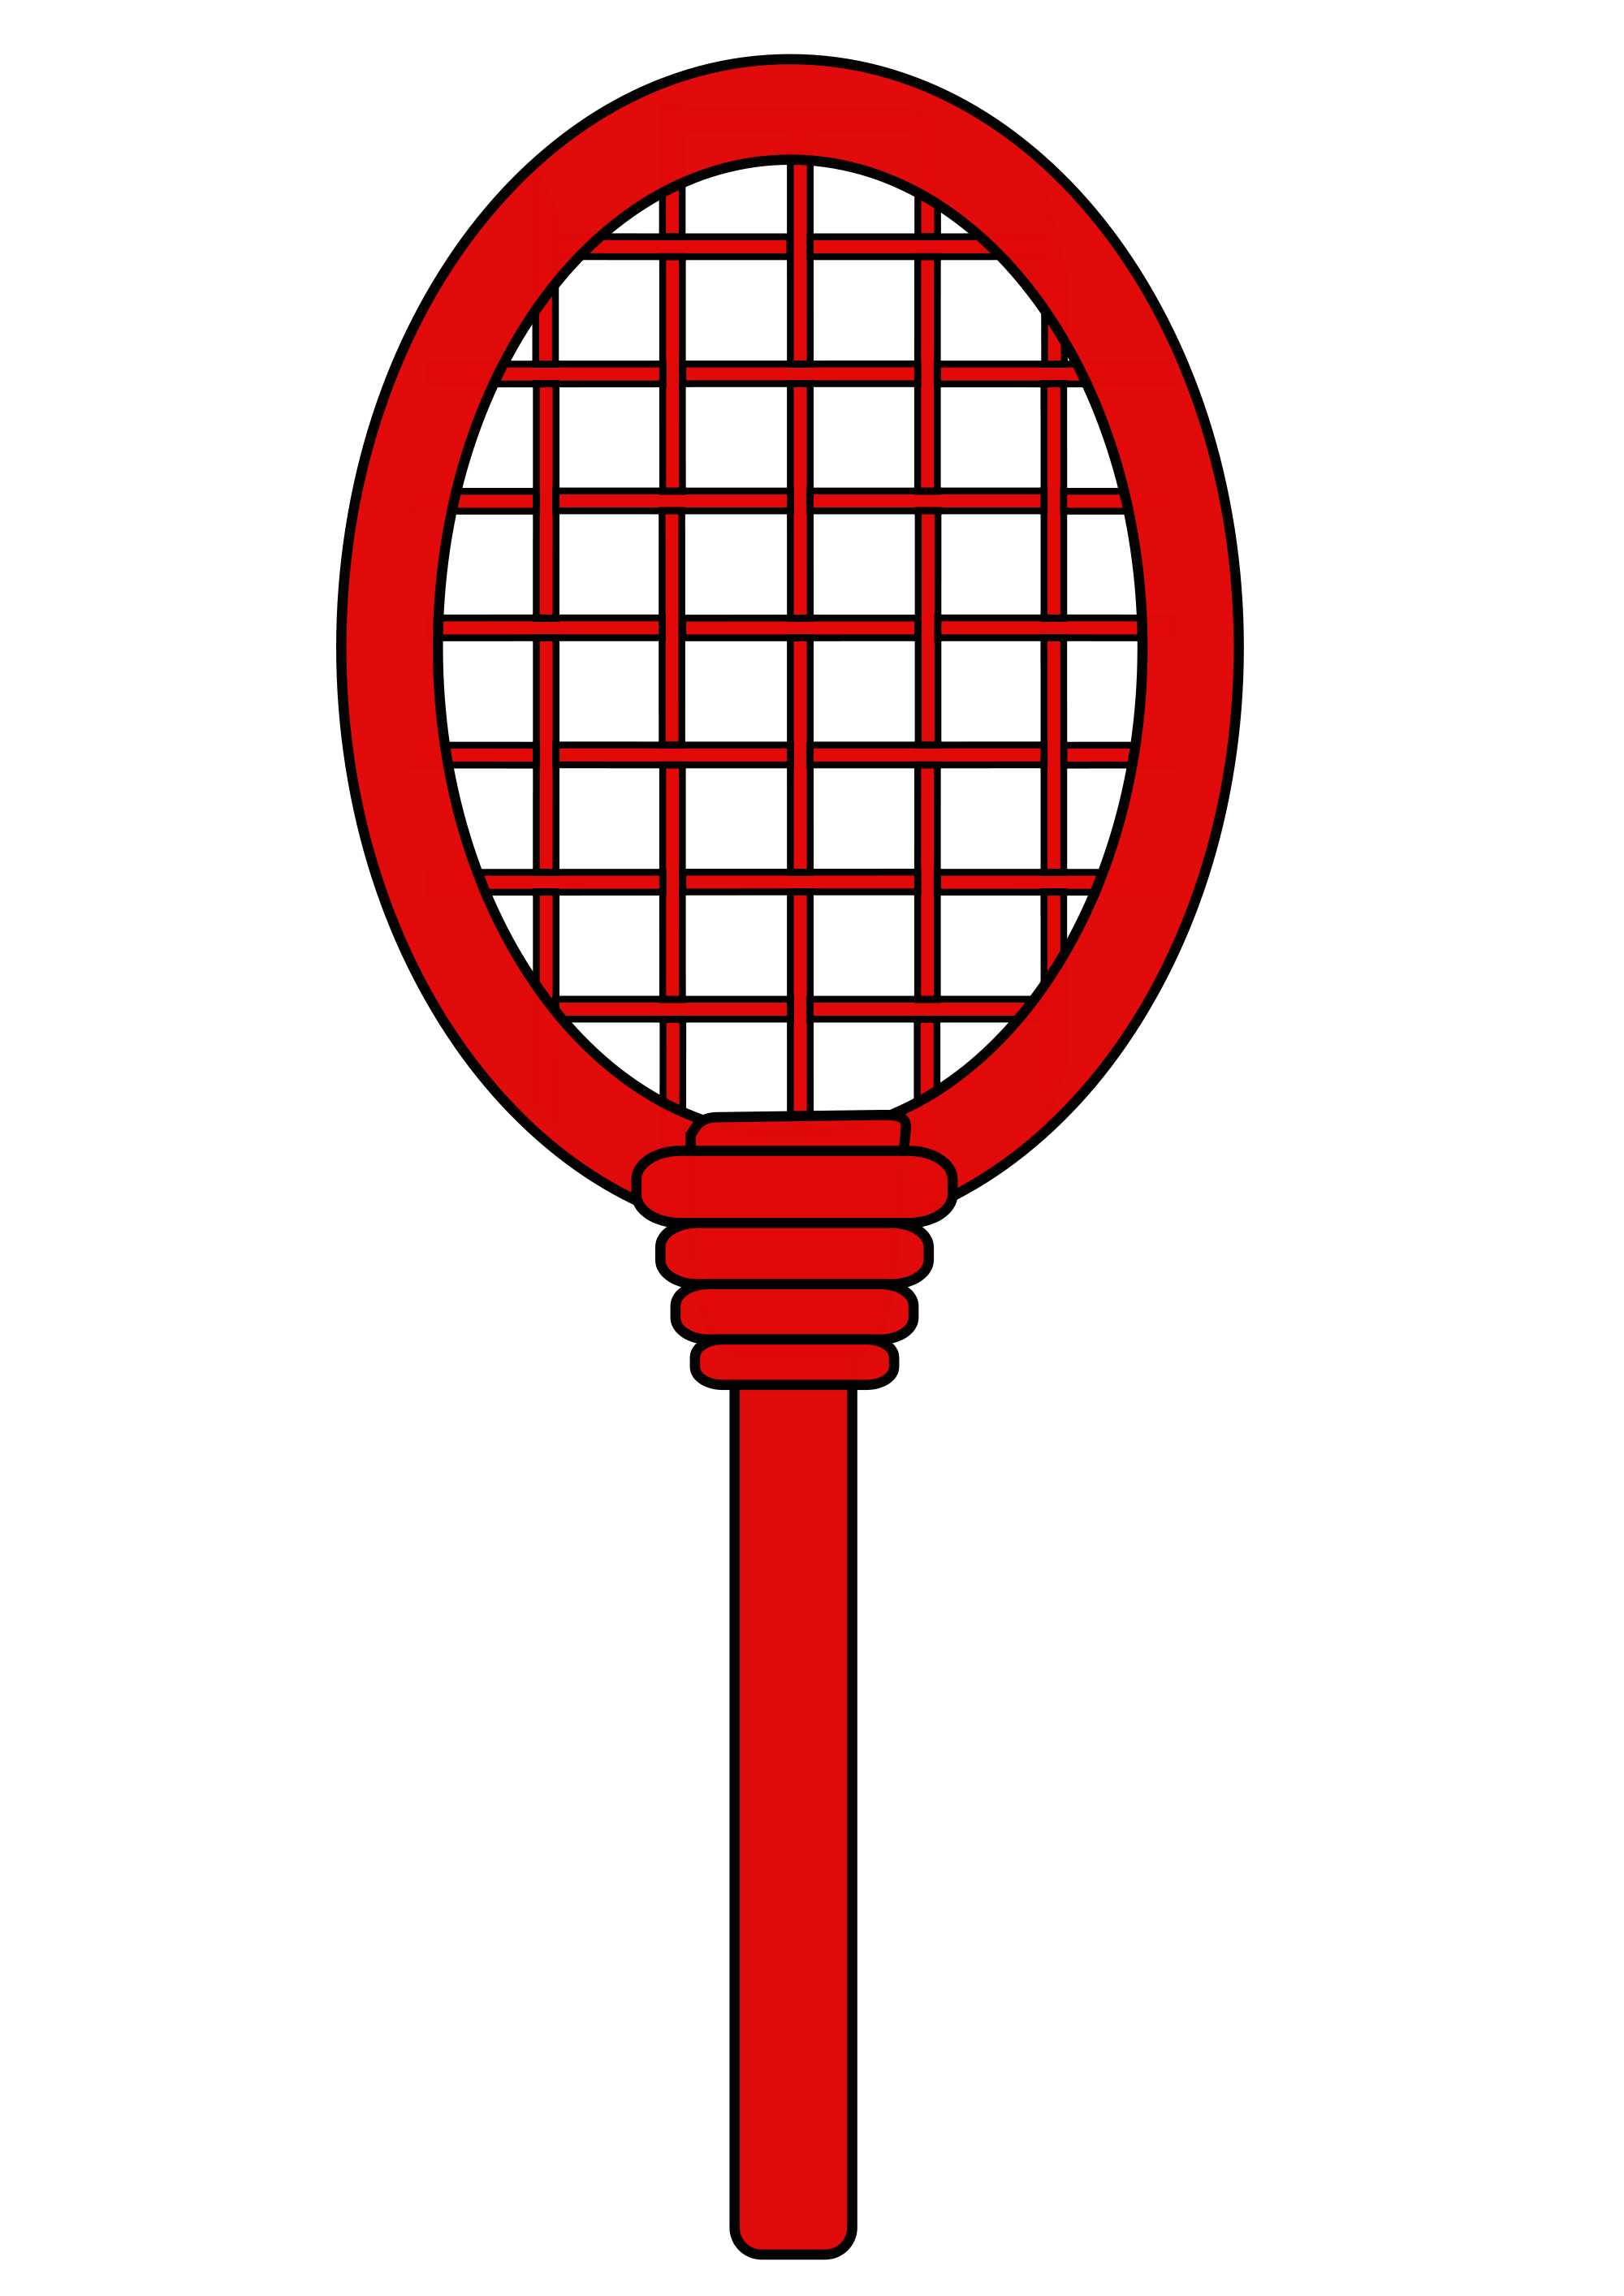 png transparent stock Clipart tennis. Racket cliparts shop of